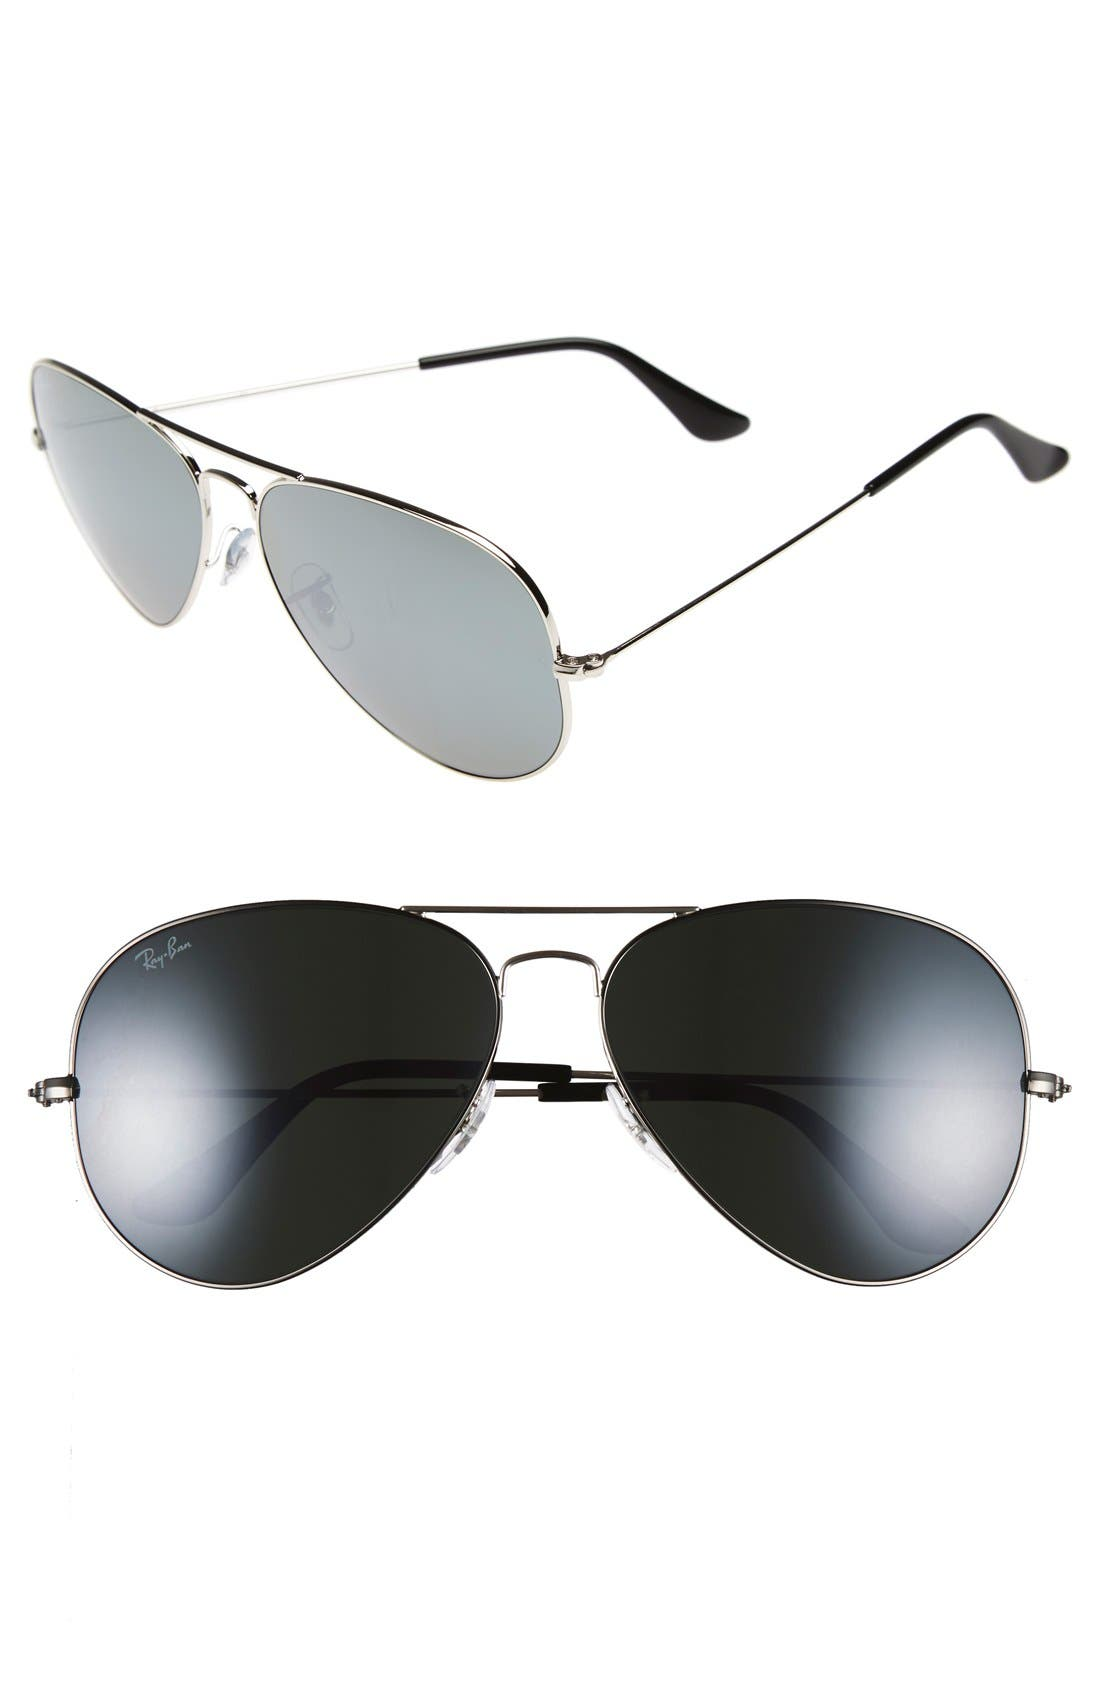 Main Image - Ray-Ban 62mm Aviator Sunglasses